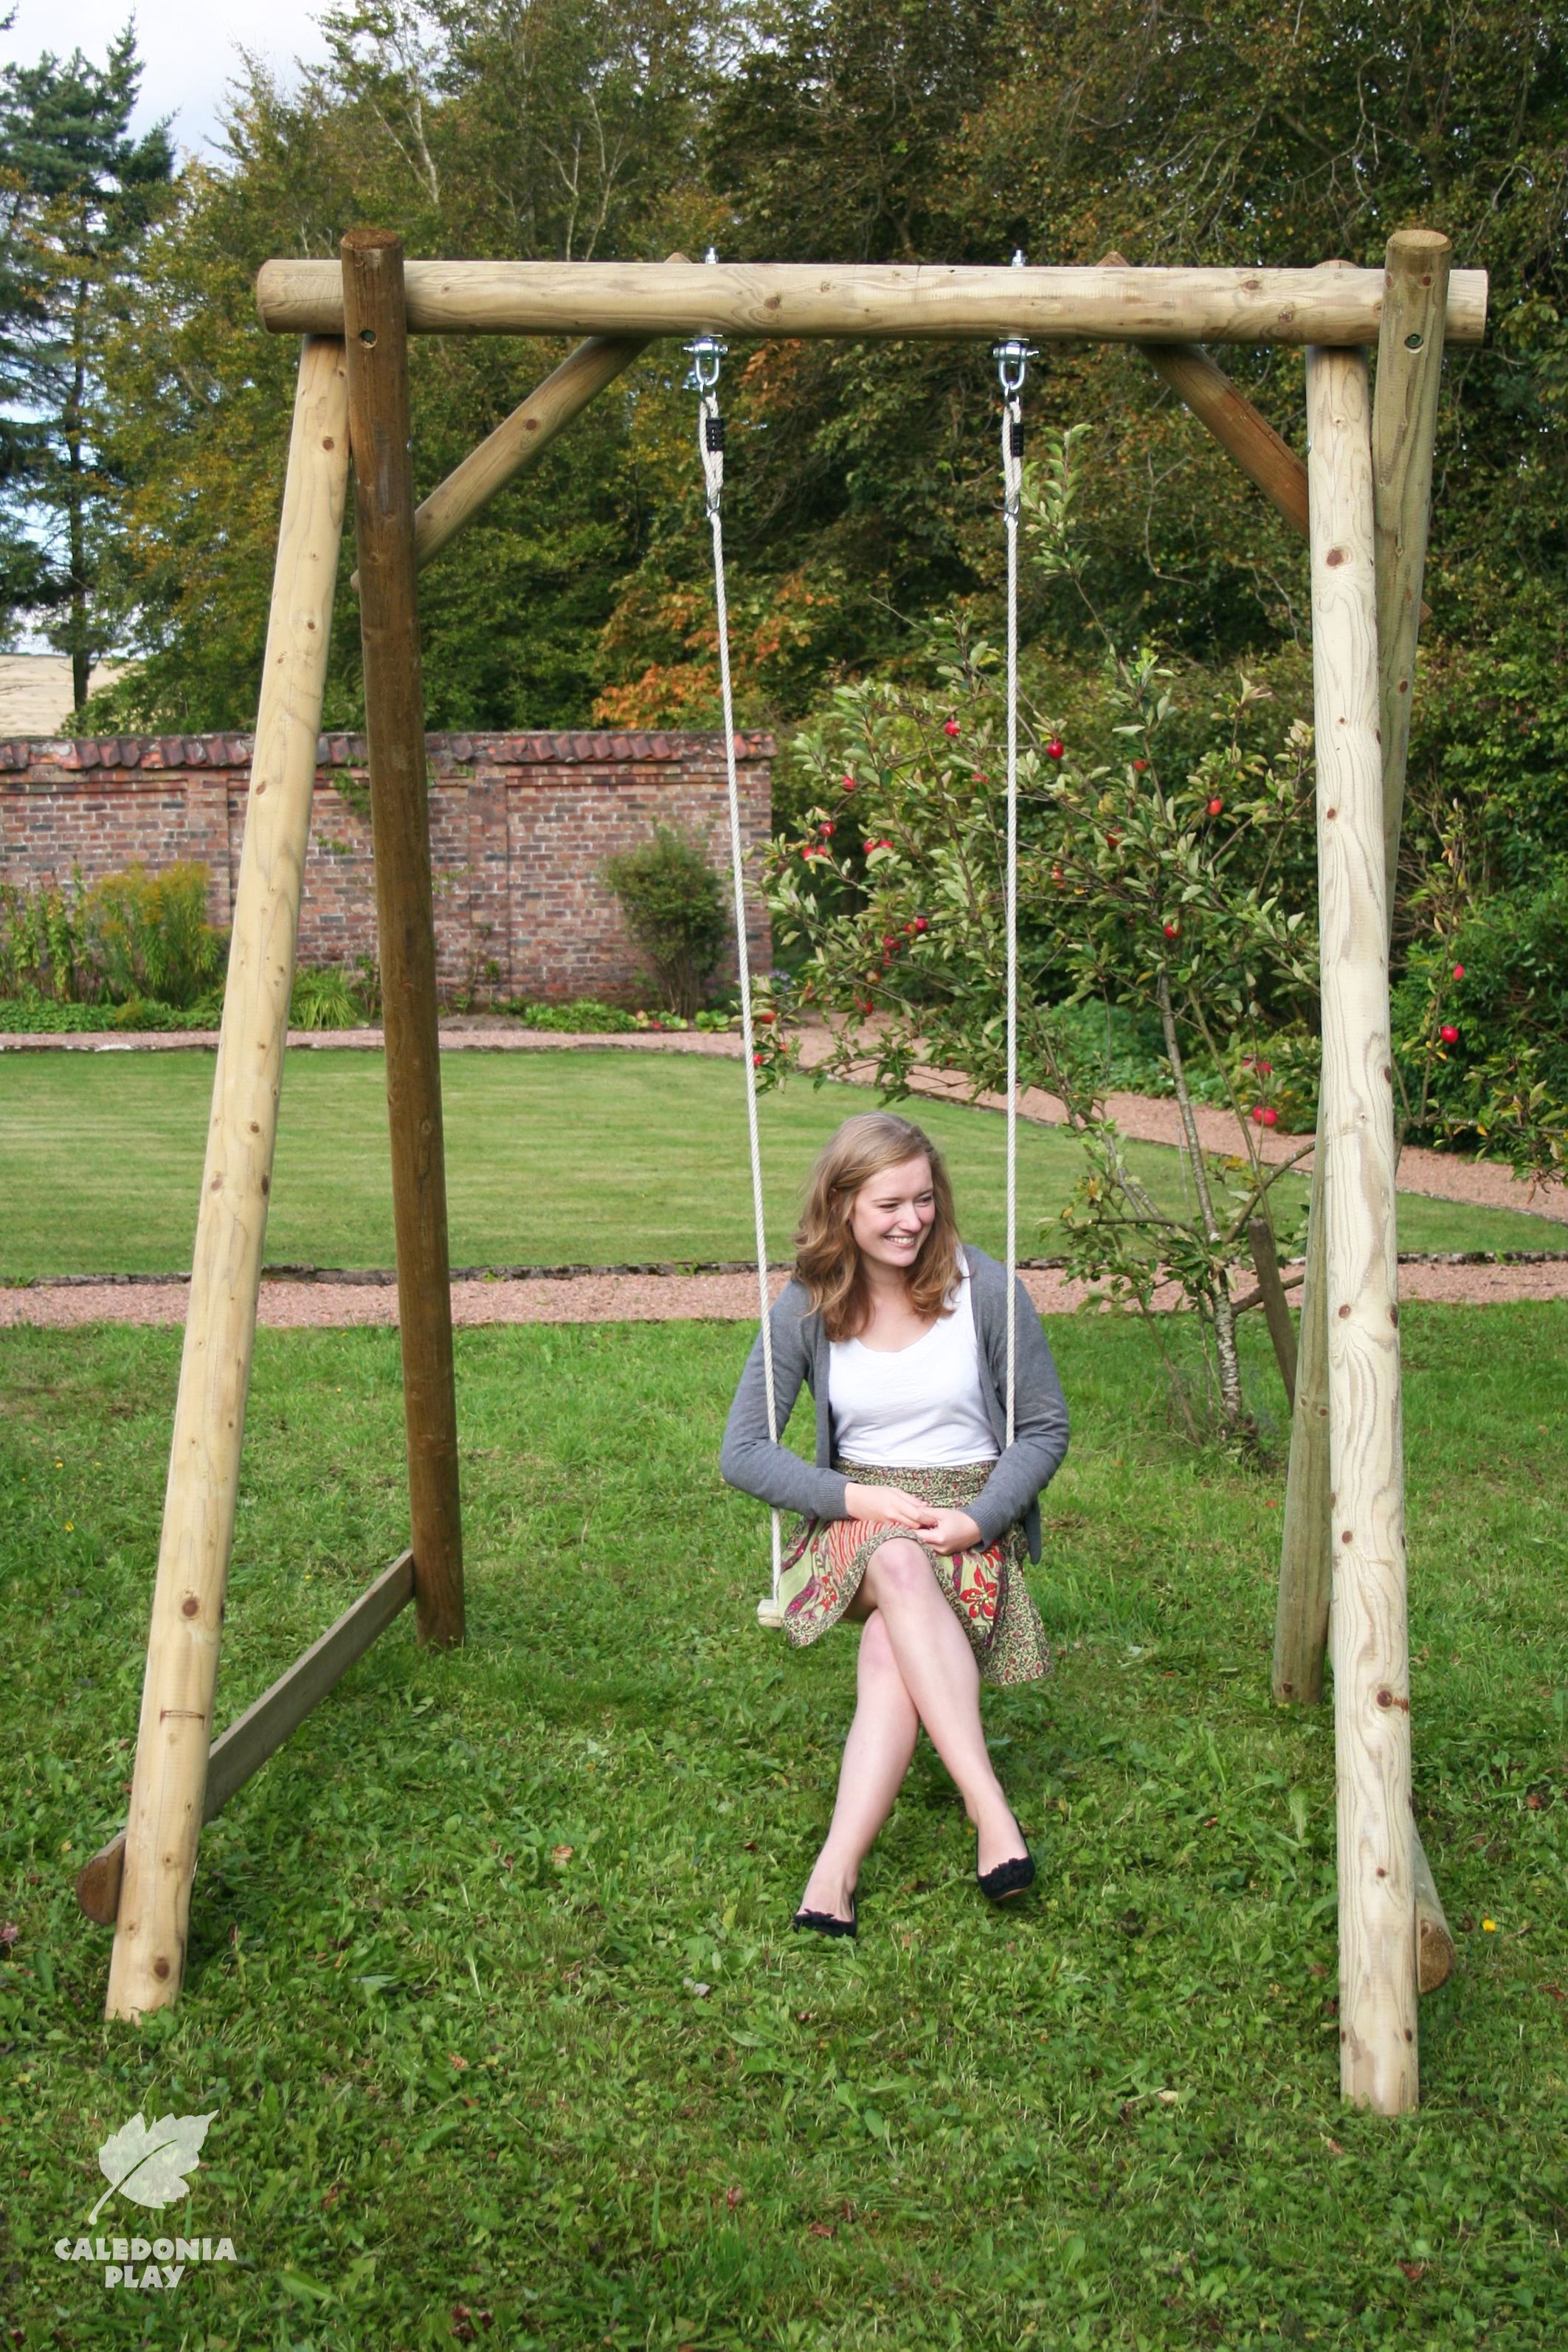 Robust wooden swing frame for the garden swing seats can be